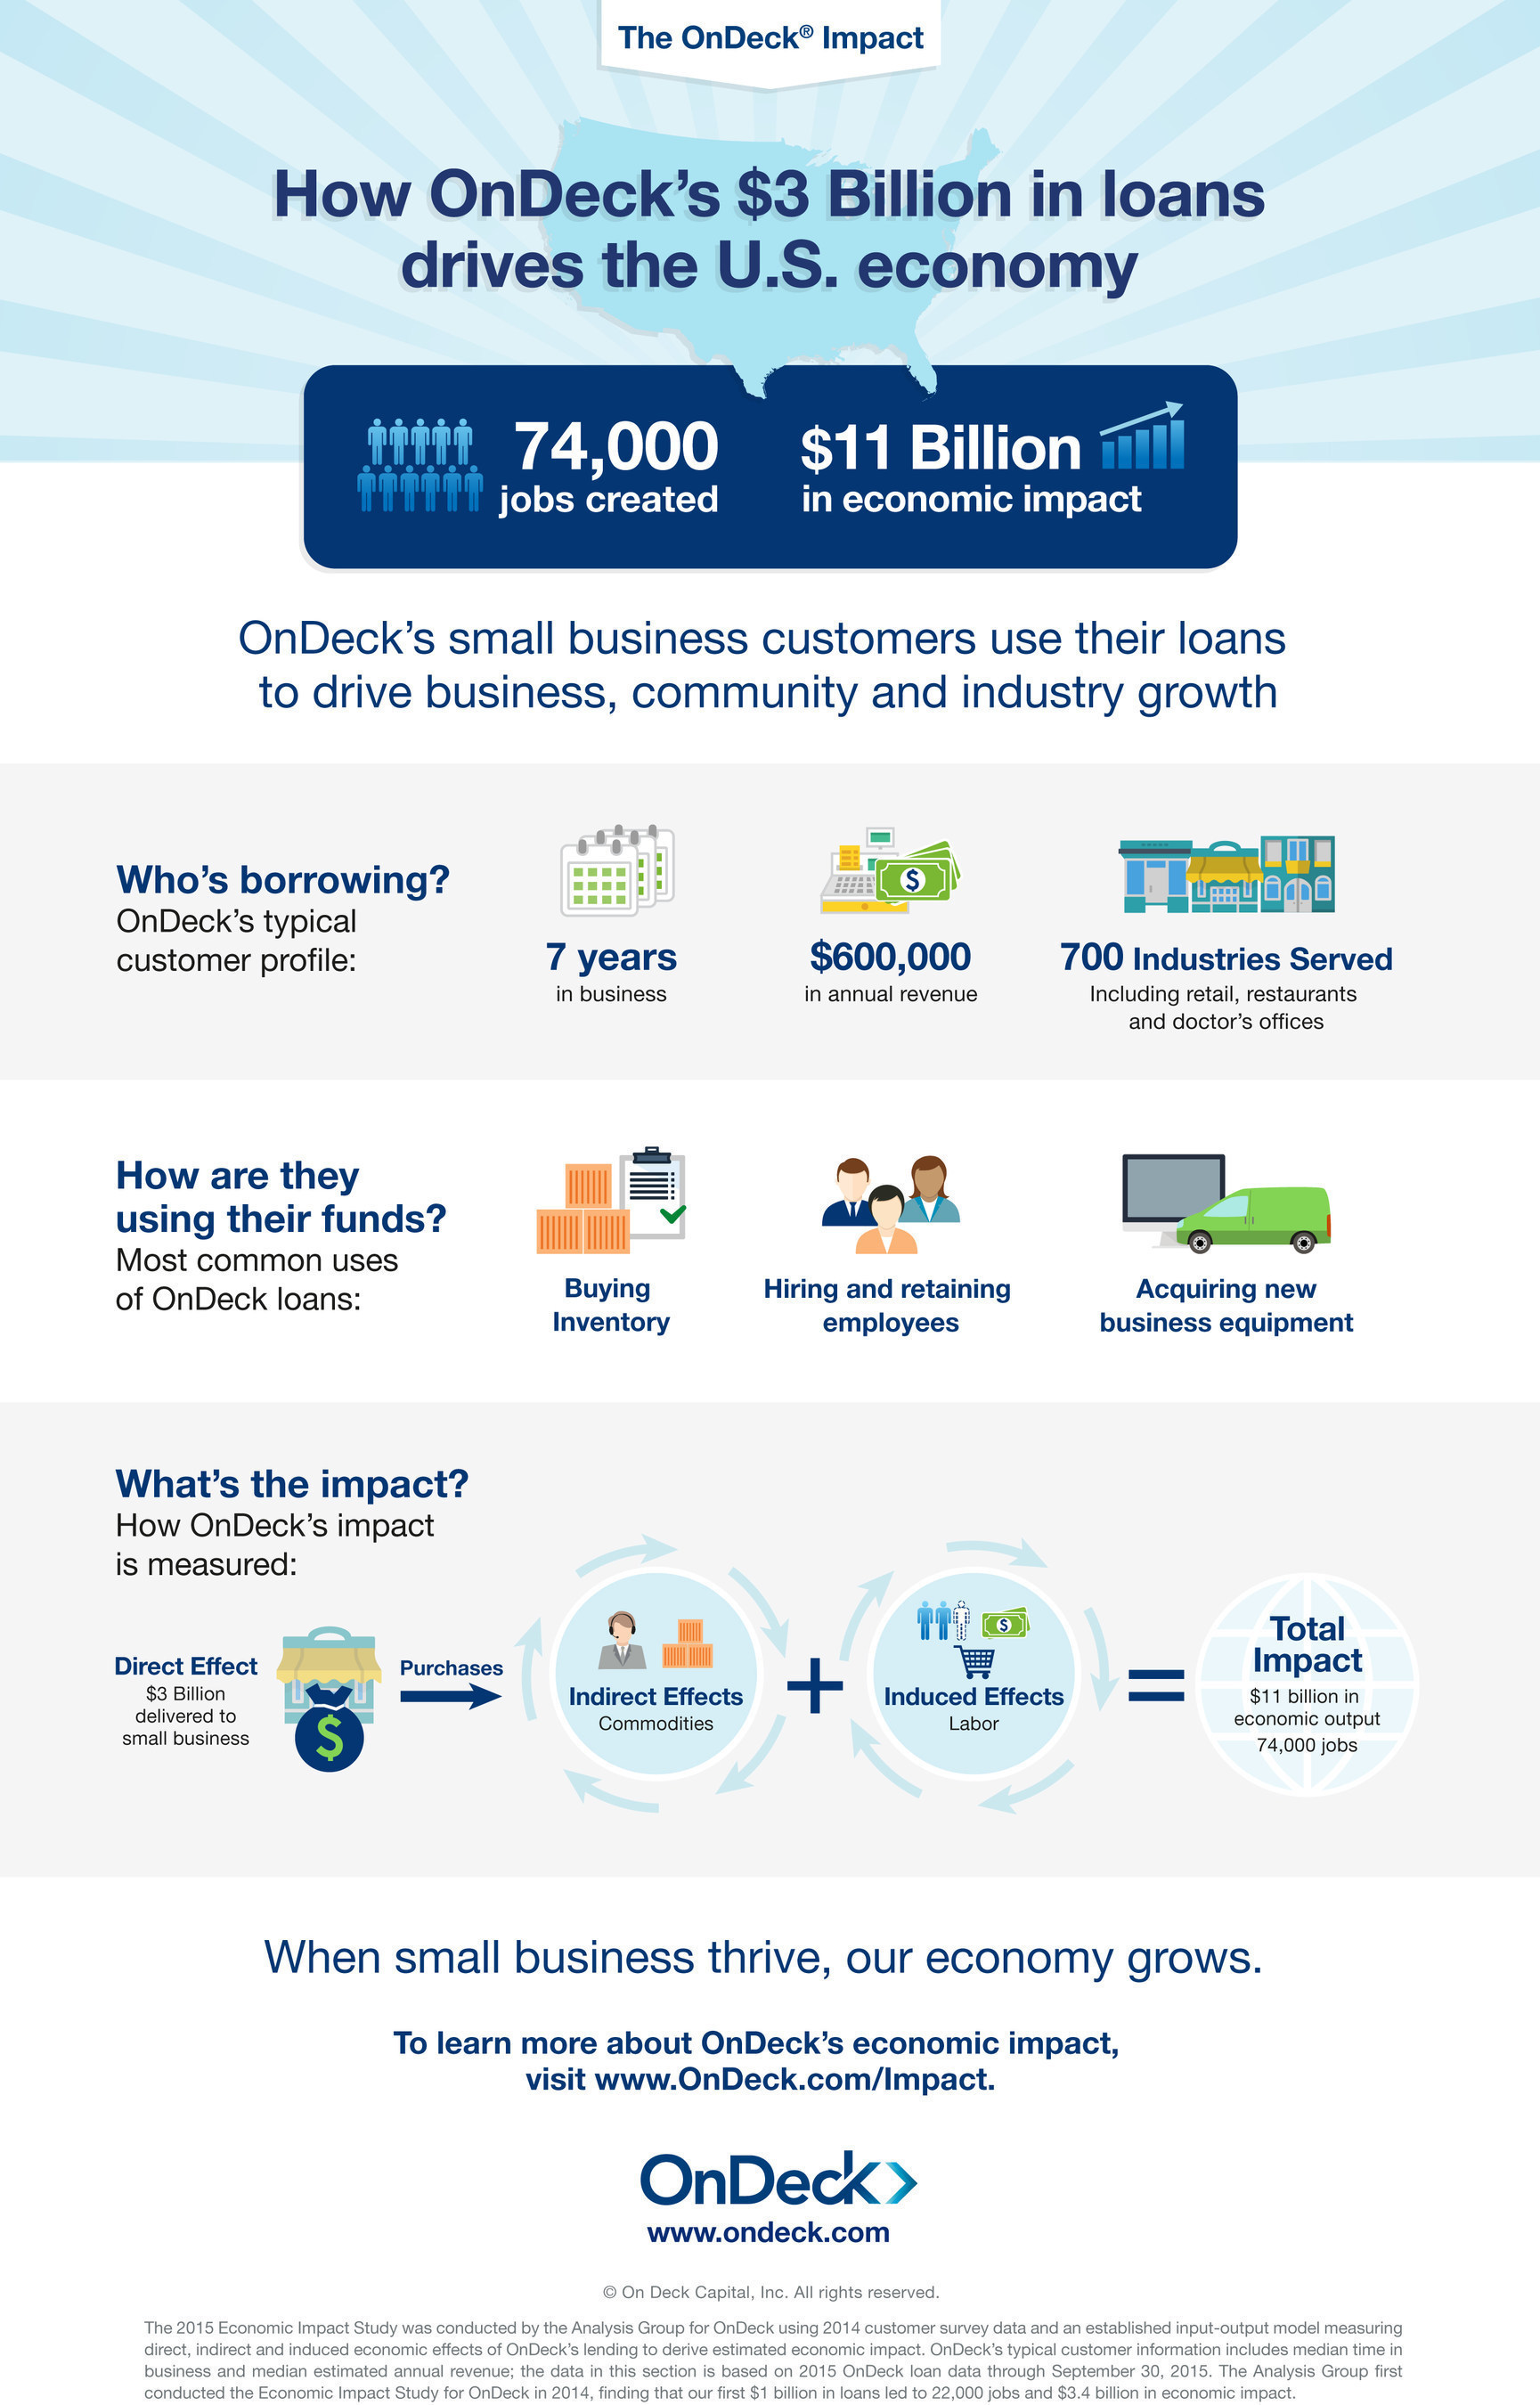 OnDeck Generates Estimated $11 Billion in Economic Impact and 74,000 Jobs Nationwide